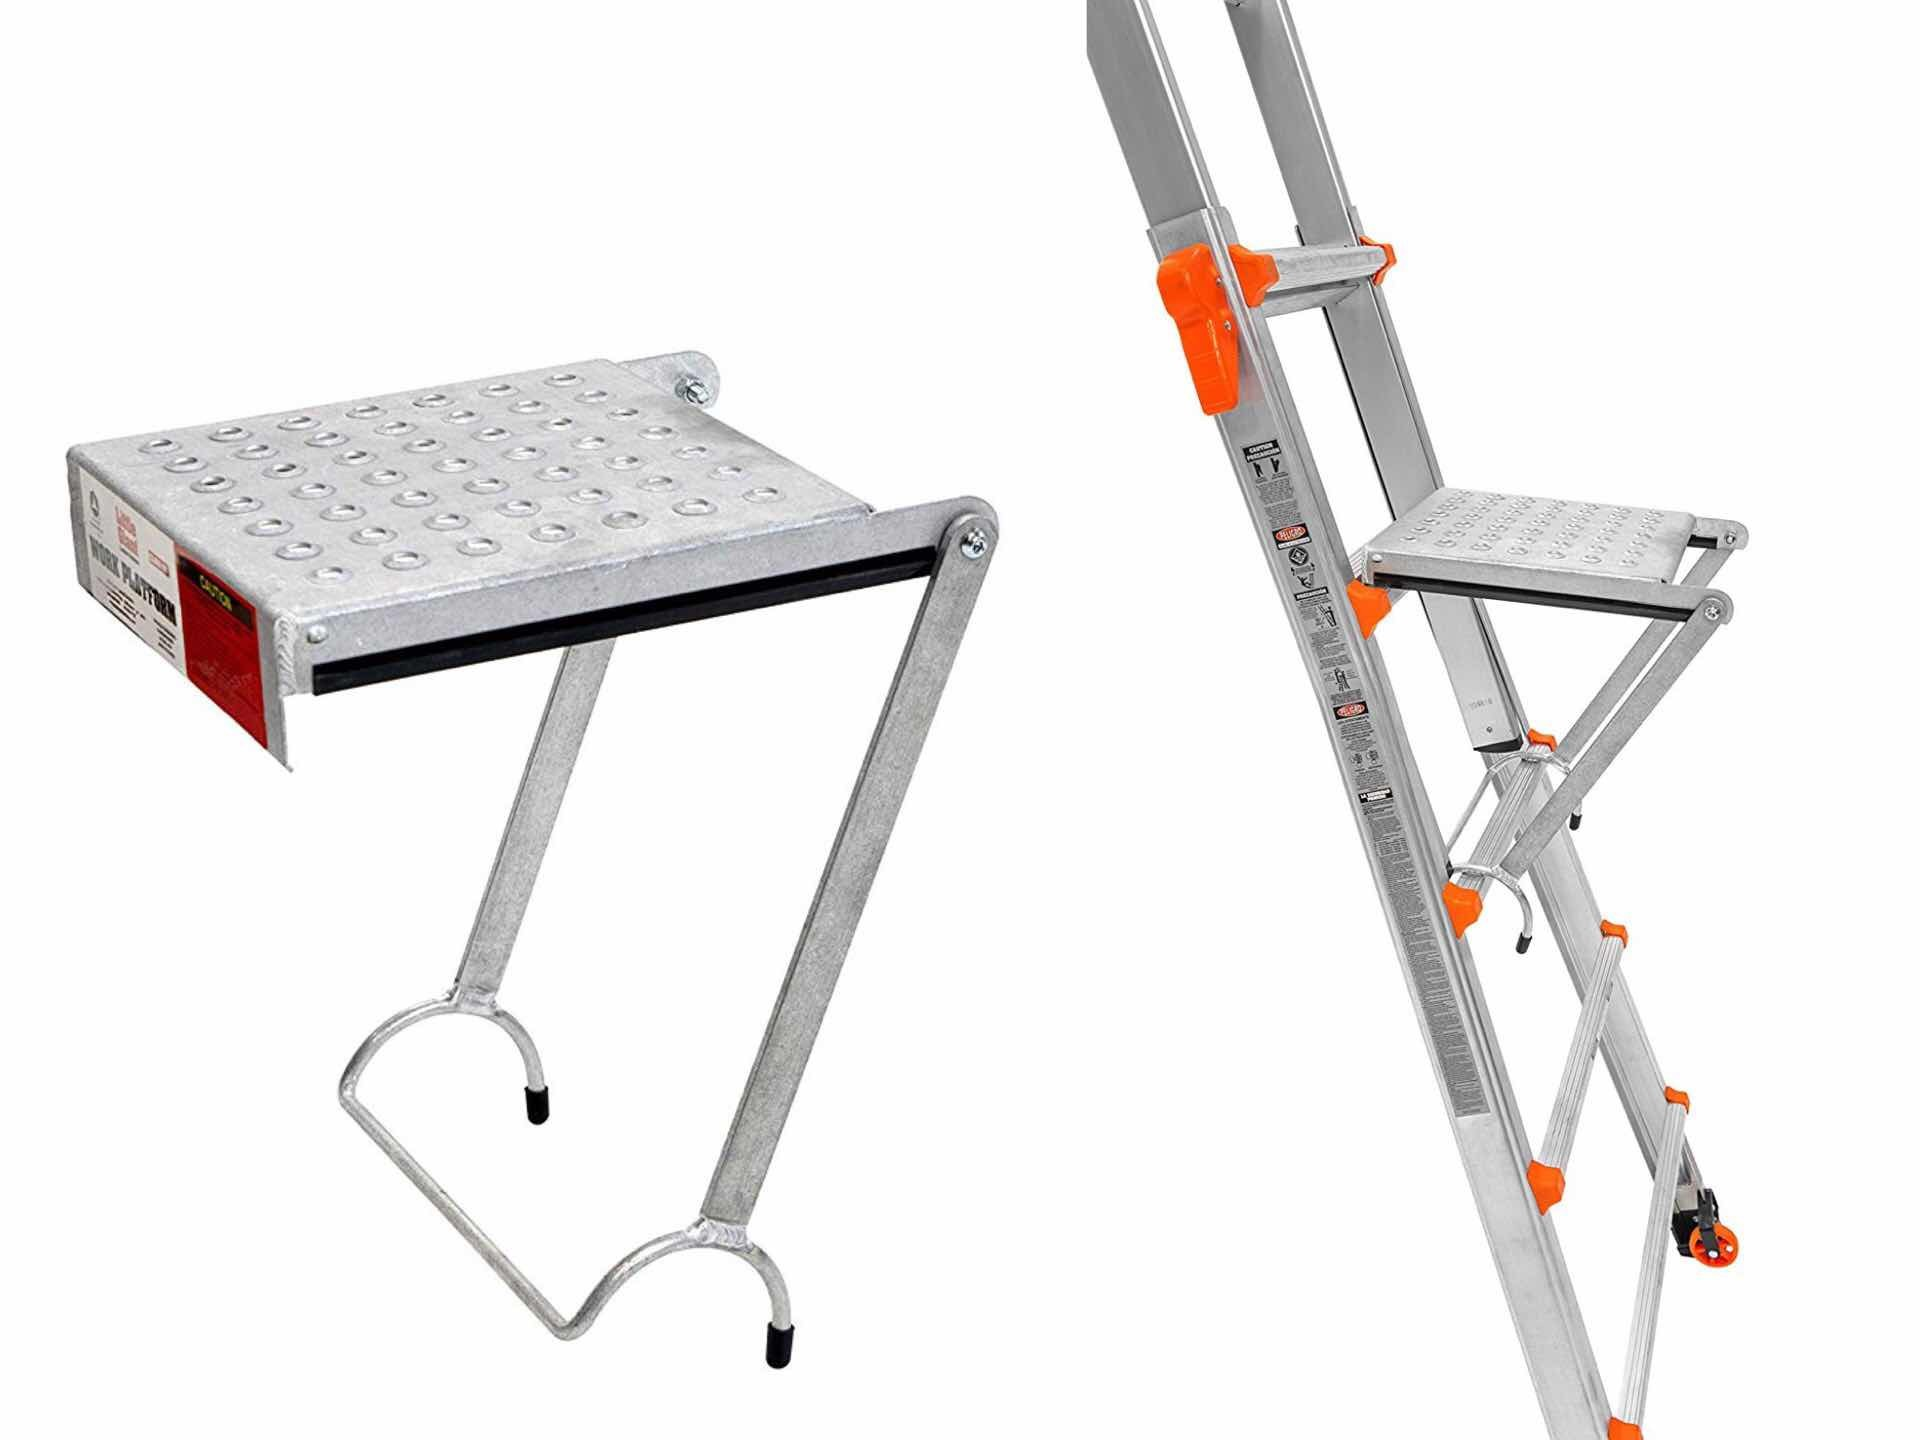 The optional work platform accessory ($33) can be added at any height and gives you a place to set down paint cans and tools, and even as a place to stand while you work without having to lean against the ladder itself.